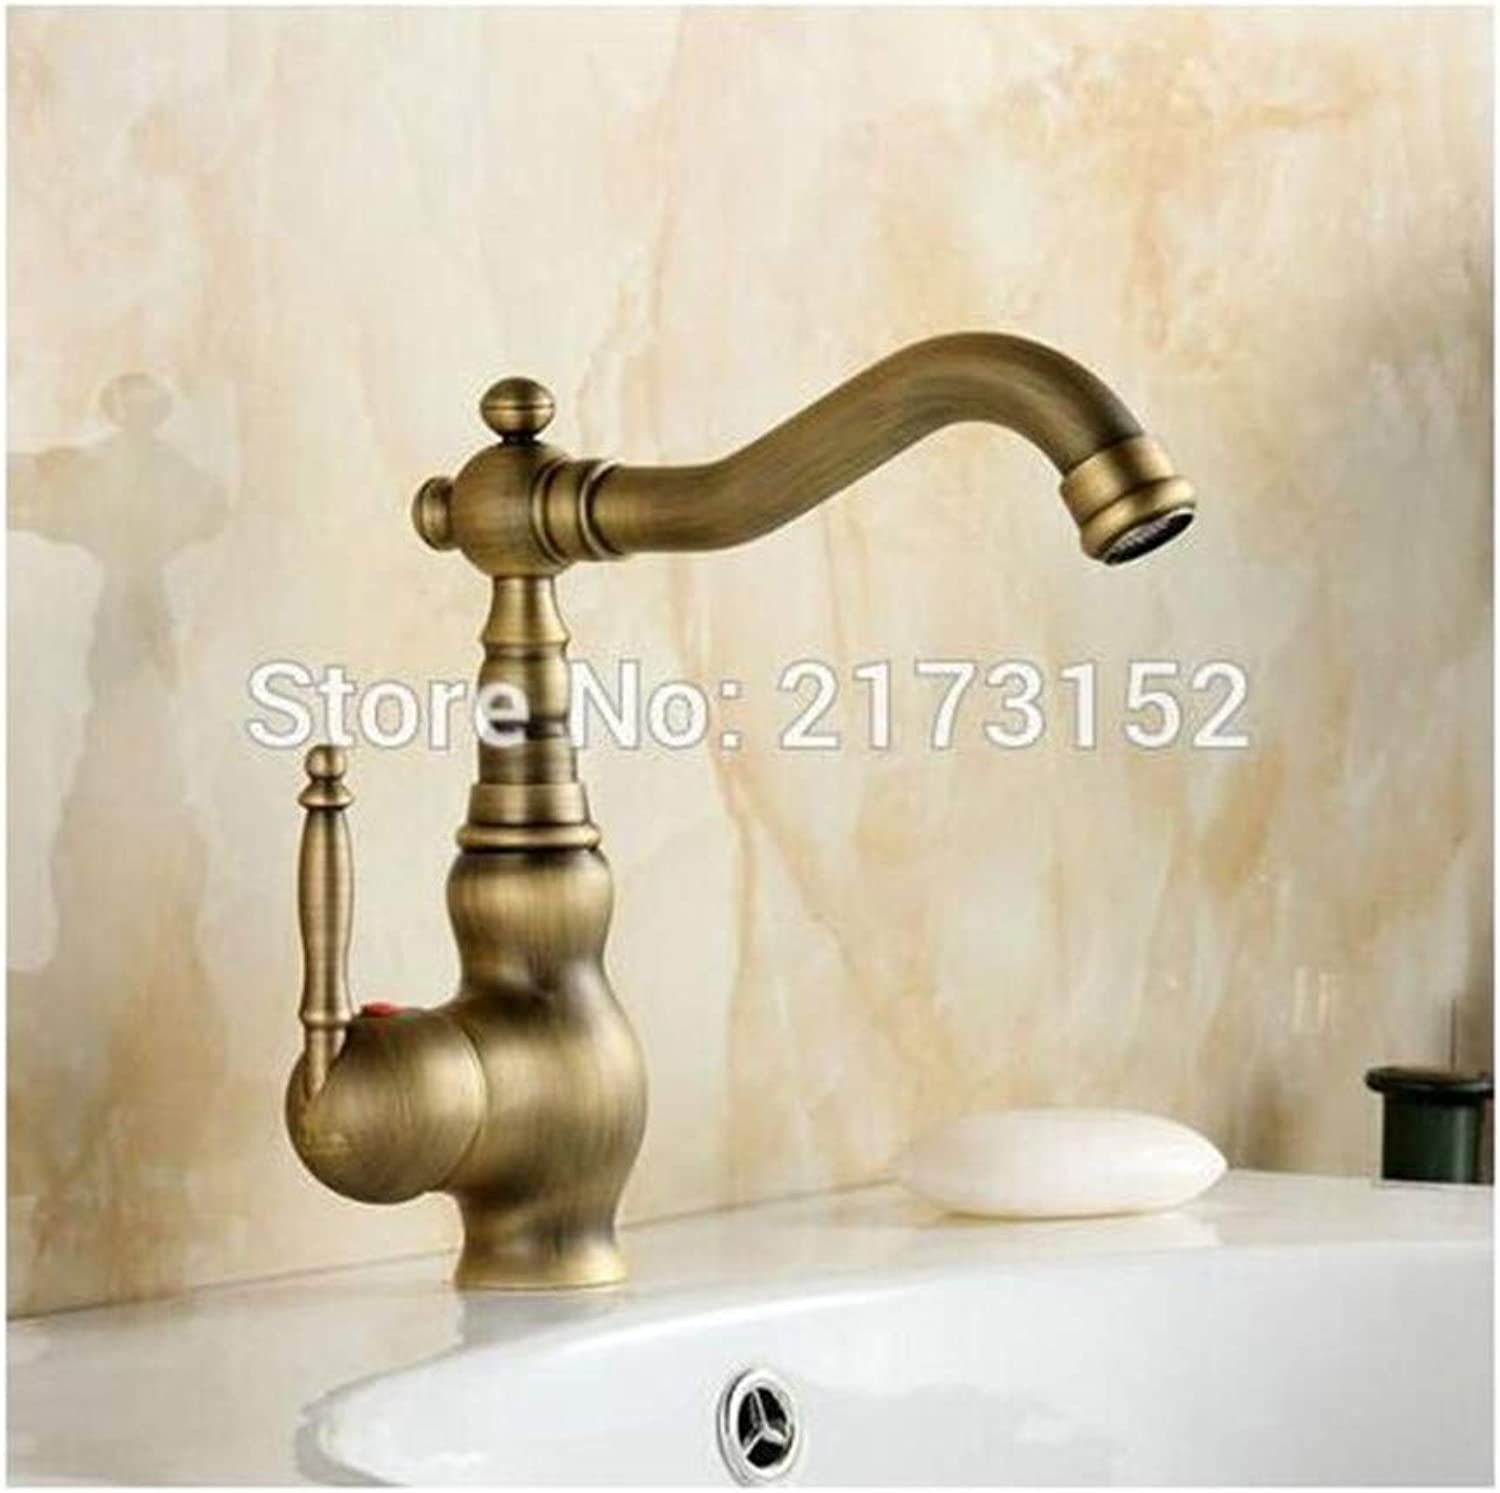 Faucet Kitchen Washing Basin Deck Mounted Antique Brass Bathroom Faucet Mouth Swivel Brass Basin Sink Mixer Tap